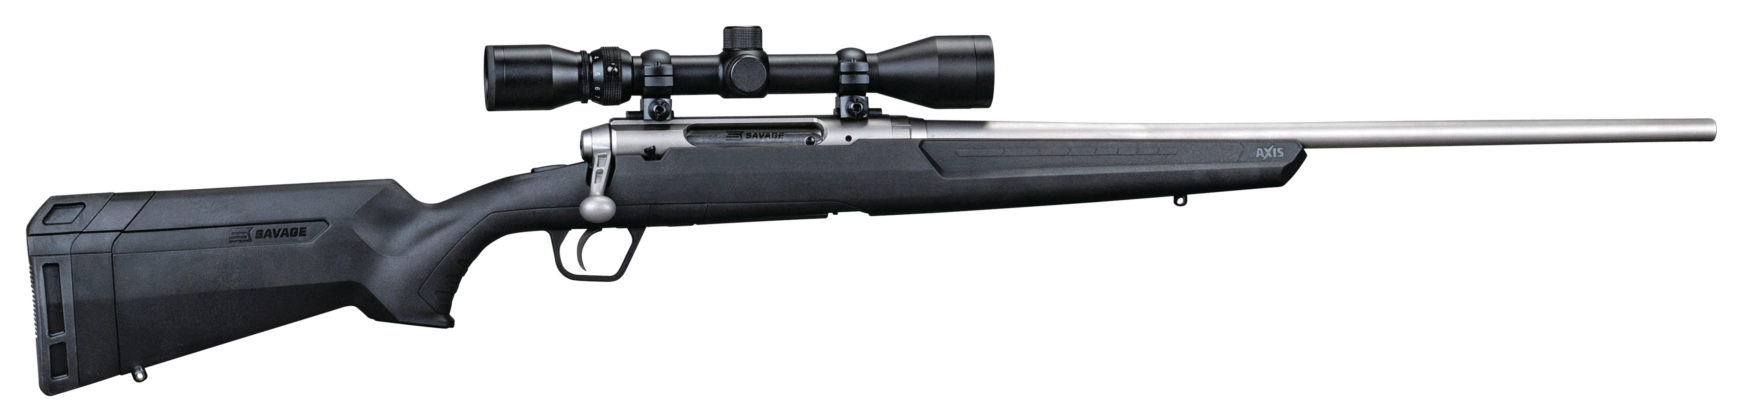 AxisXP stainless Savage